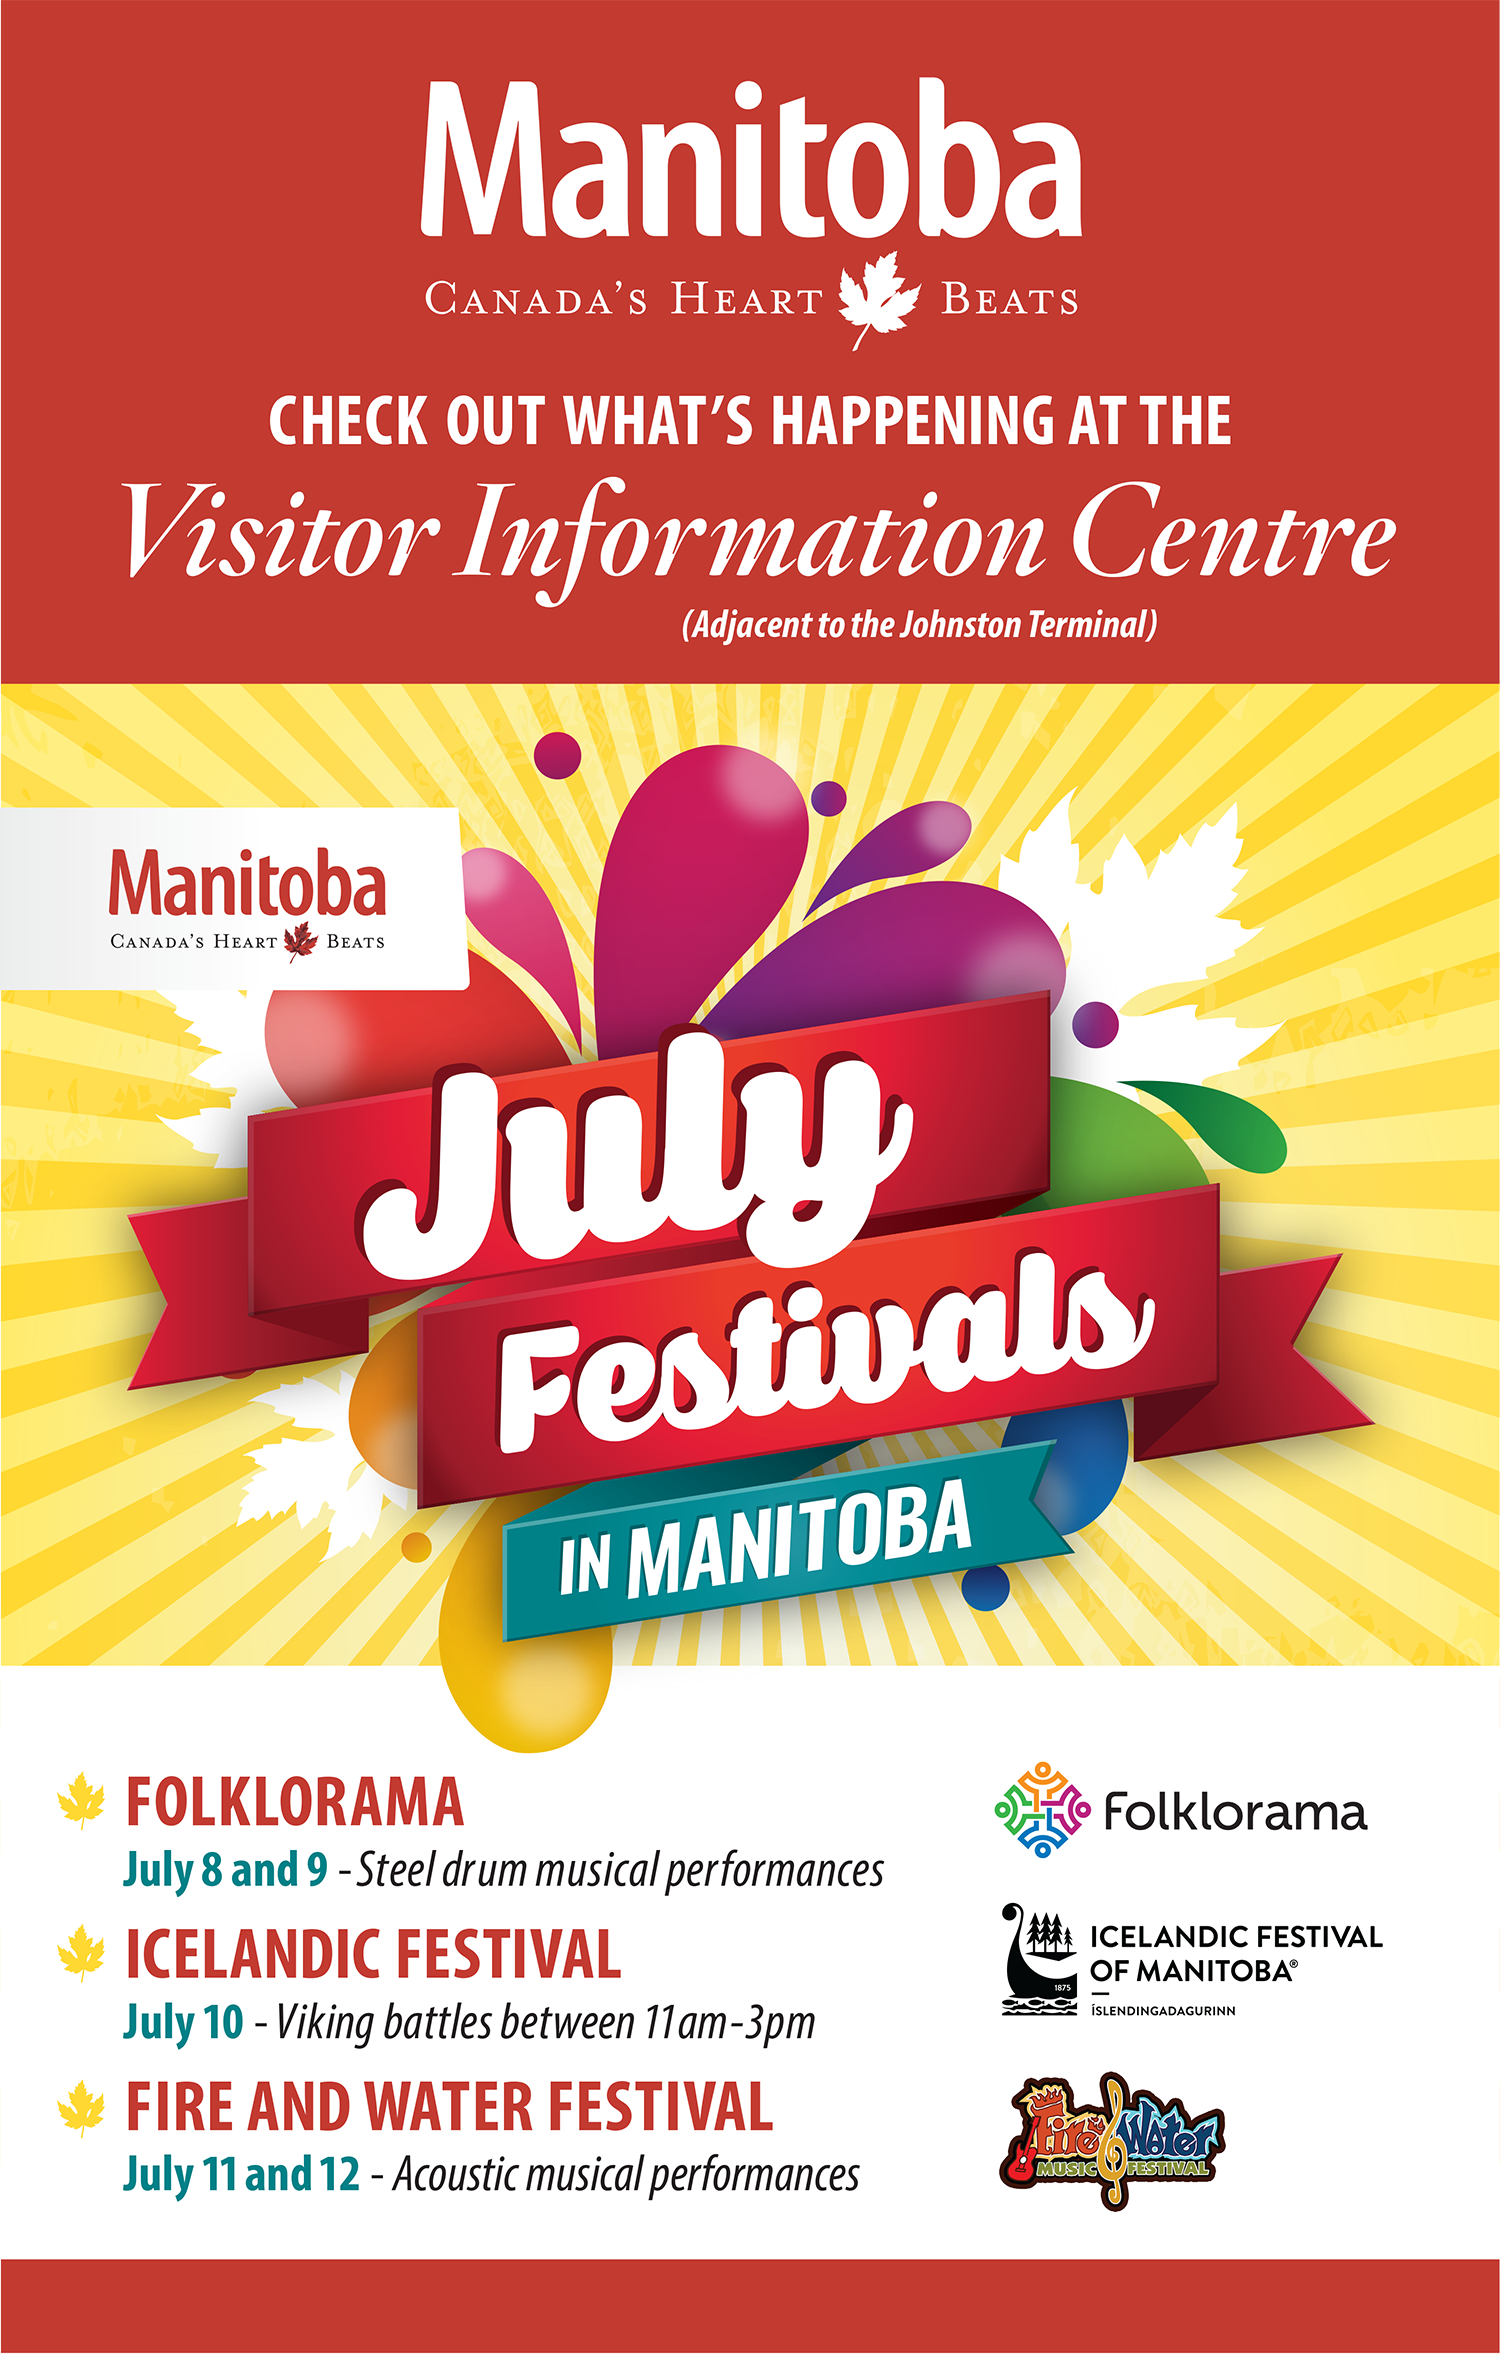 Events in the Visitor Information Centre at The Forks